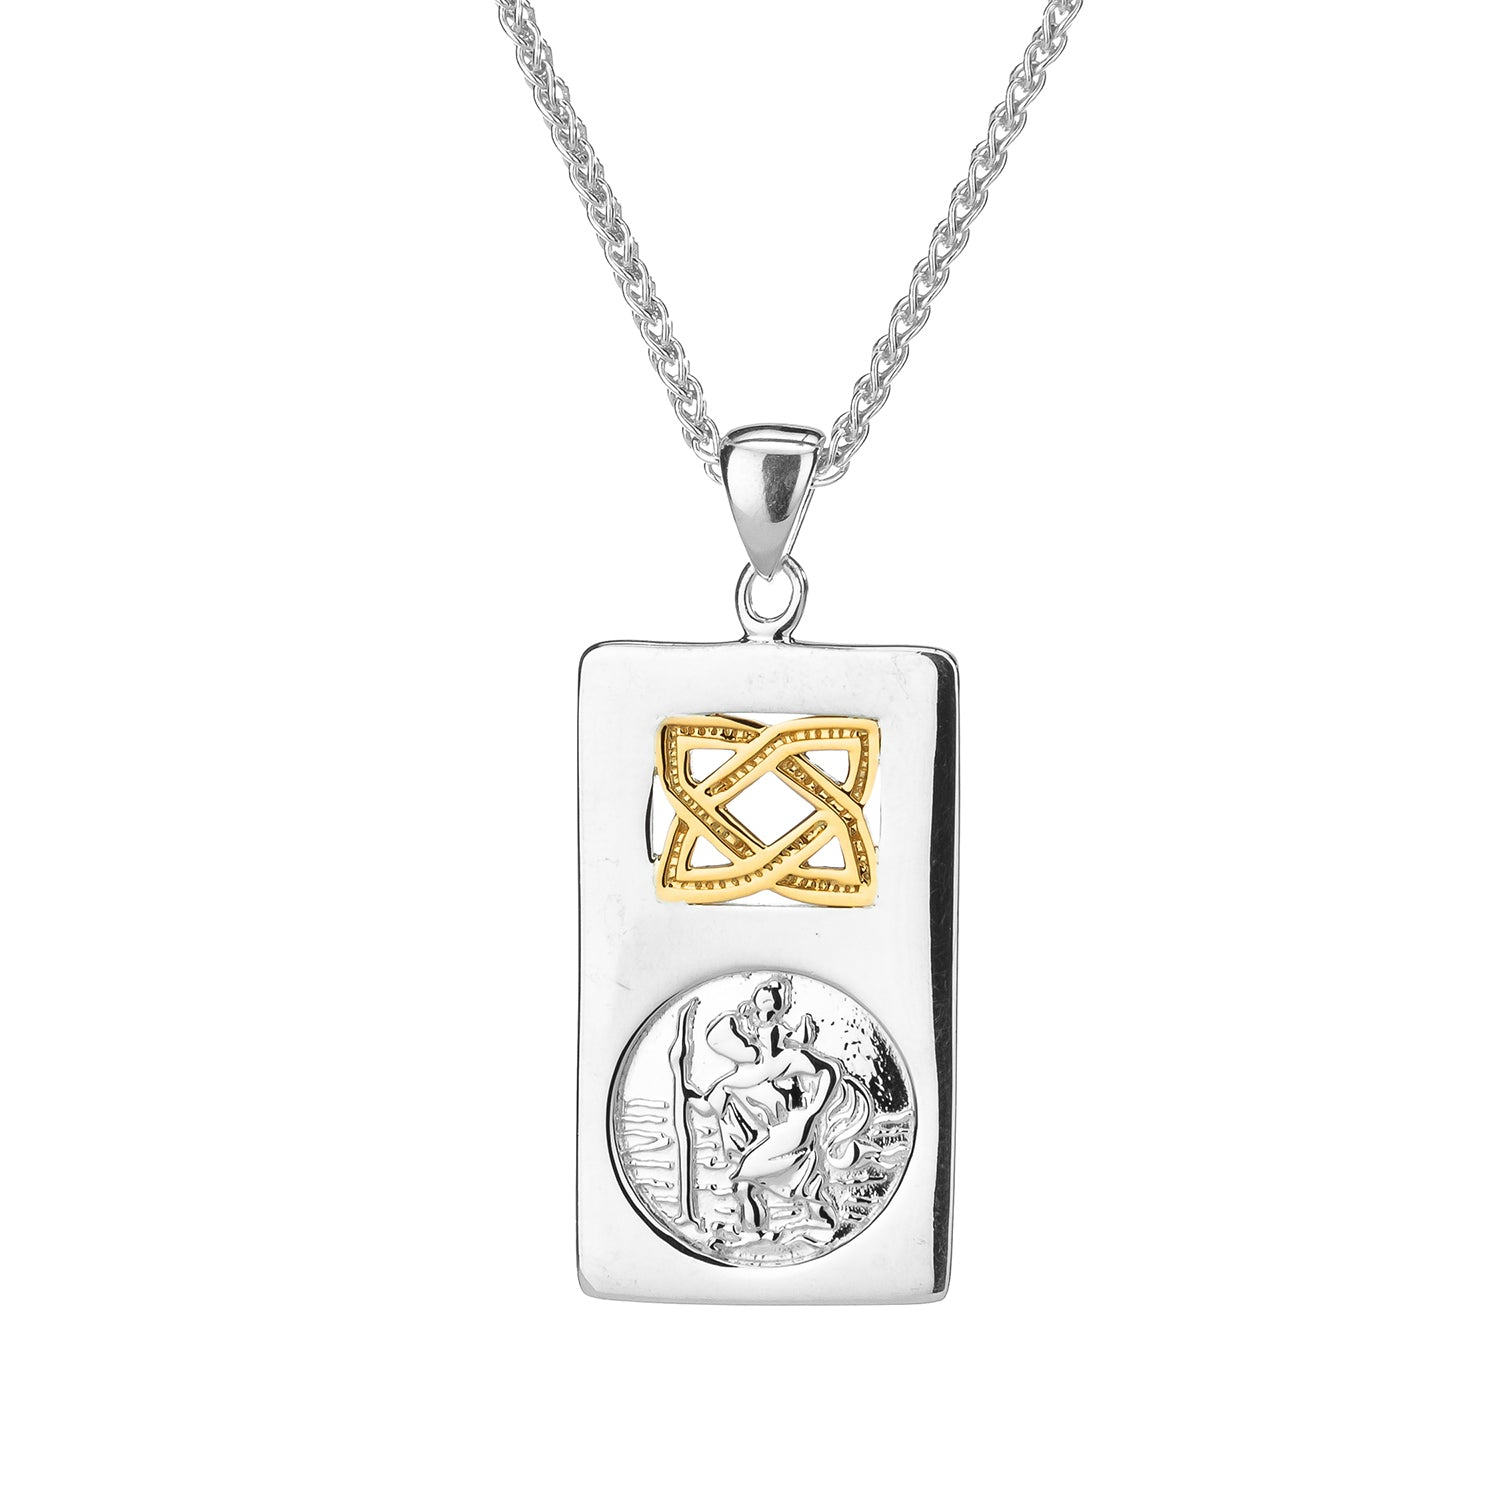 Pendant 10k St. Christopher Pendant from welch and company jewelers near syracuse ny